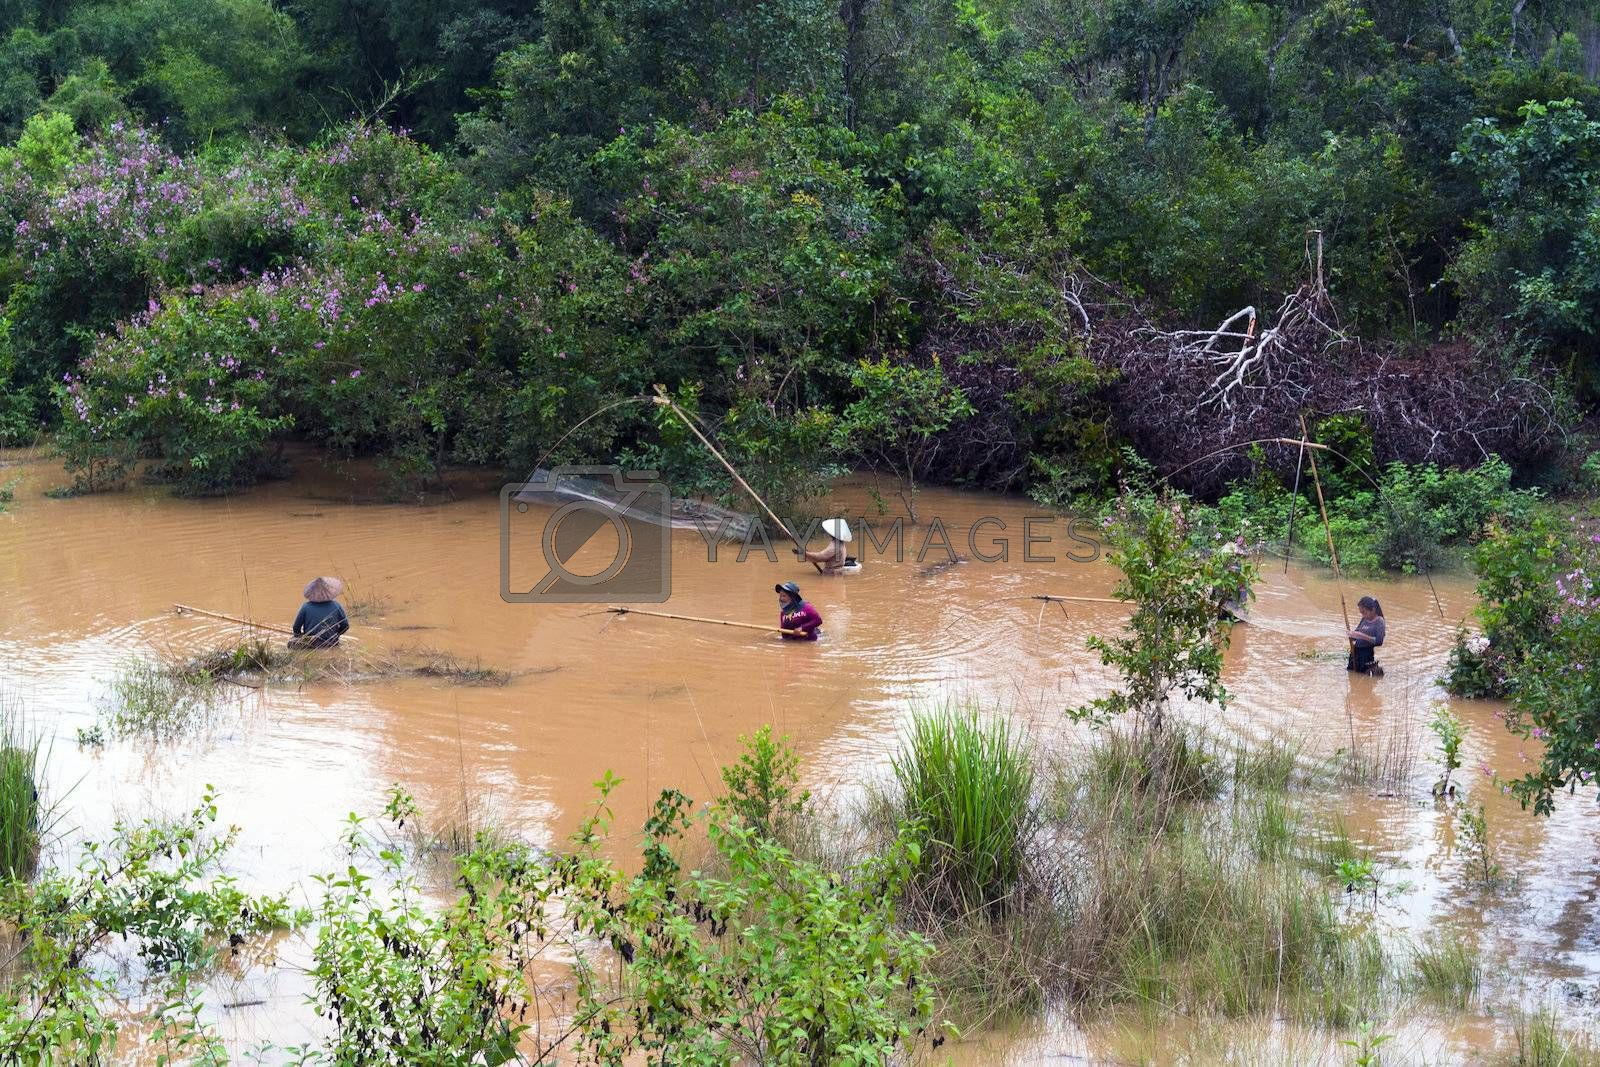 Lao Women Catch Fish in River. Khammouane province. EDITORIAL.